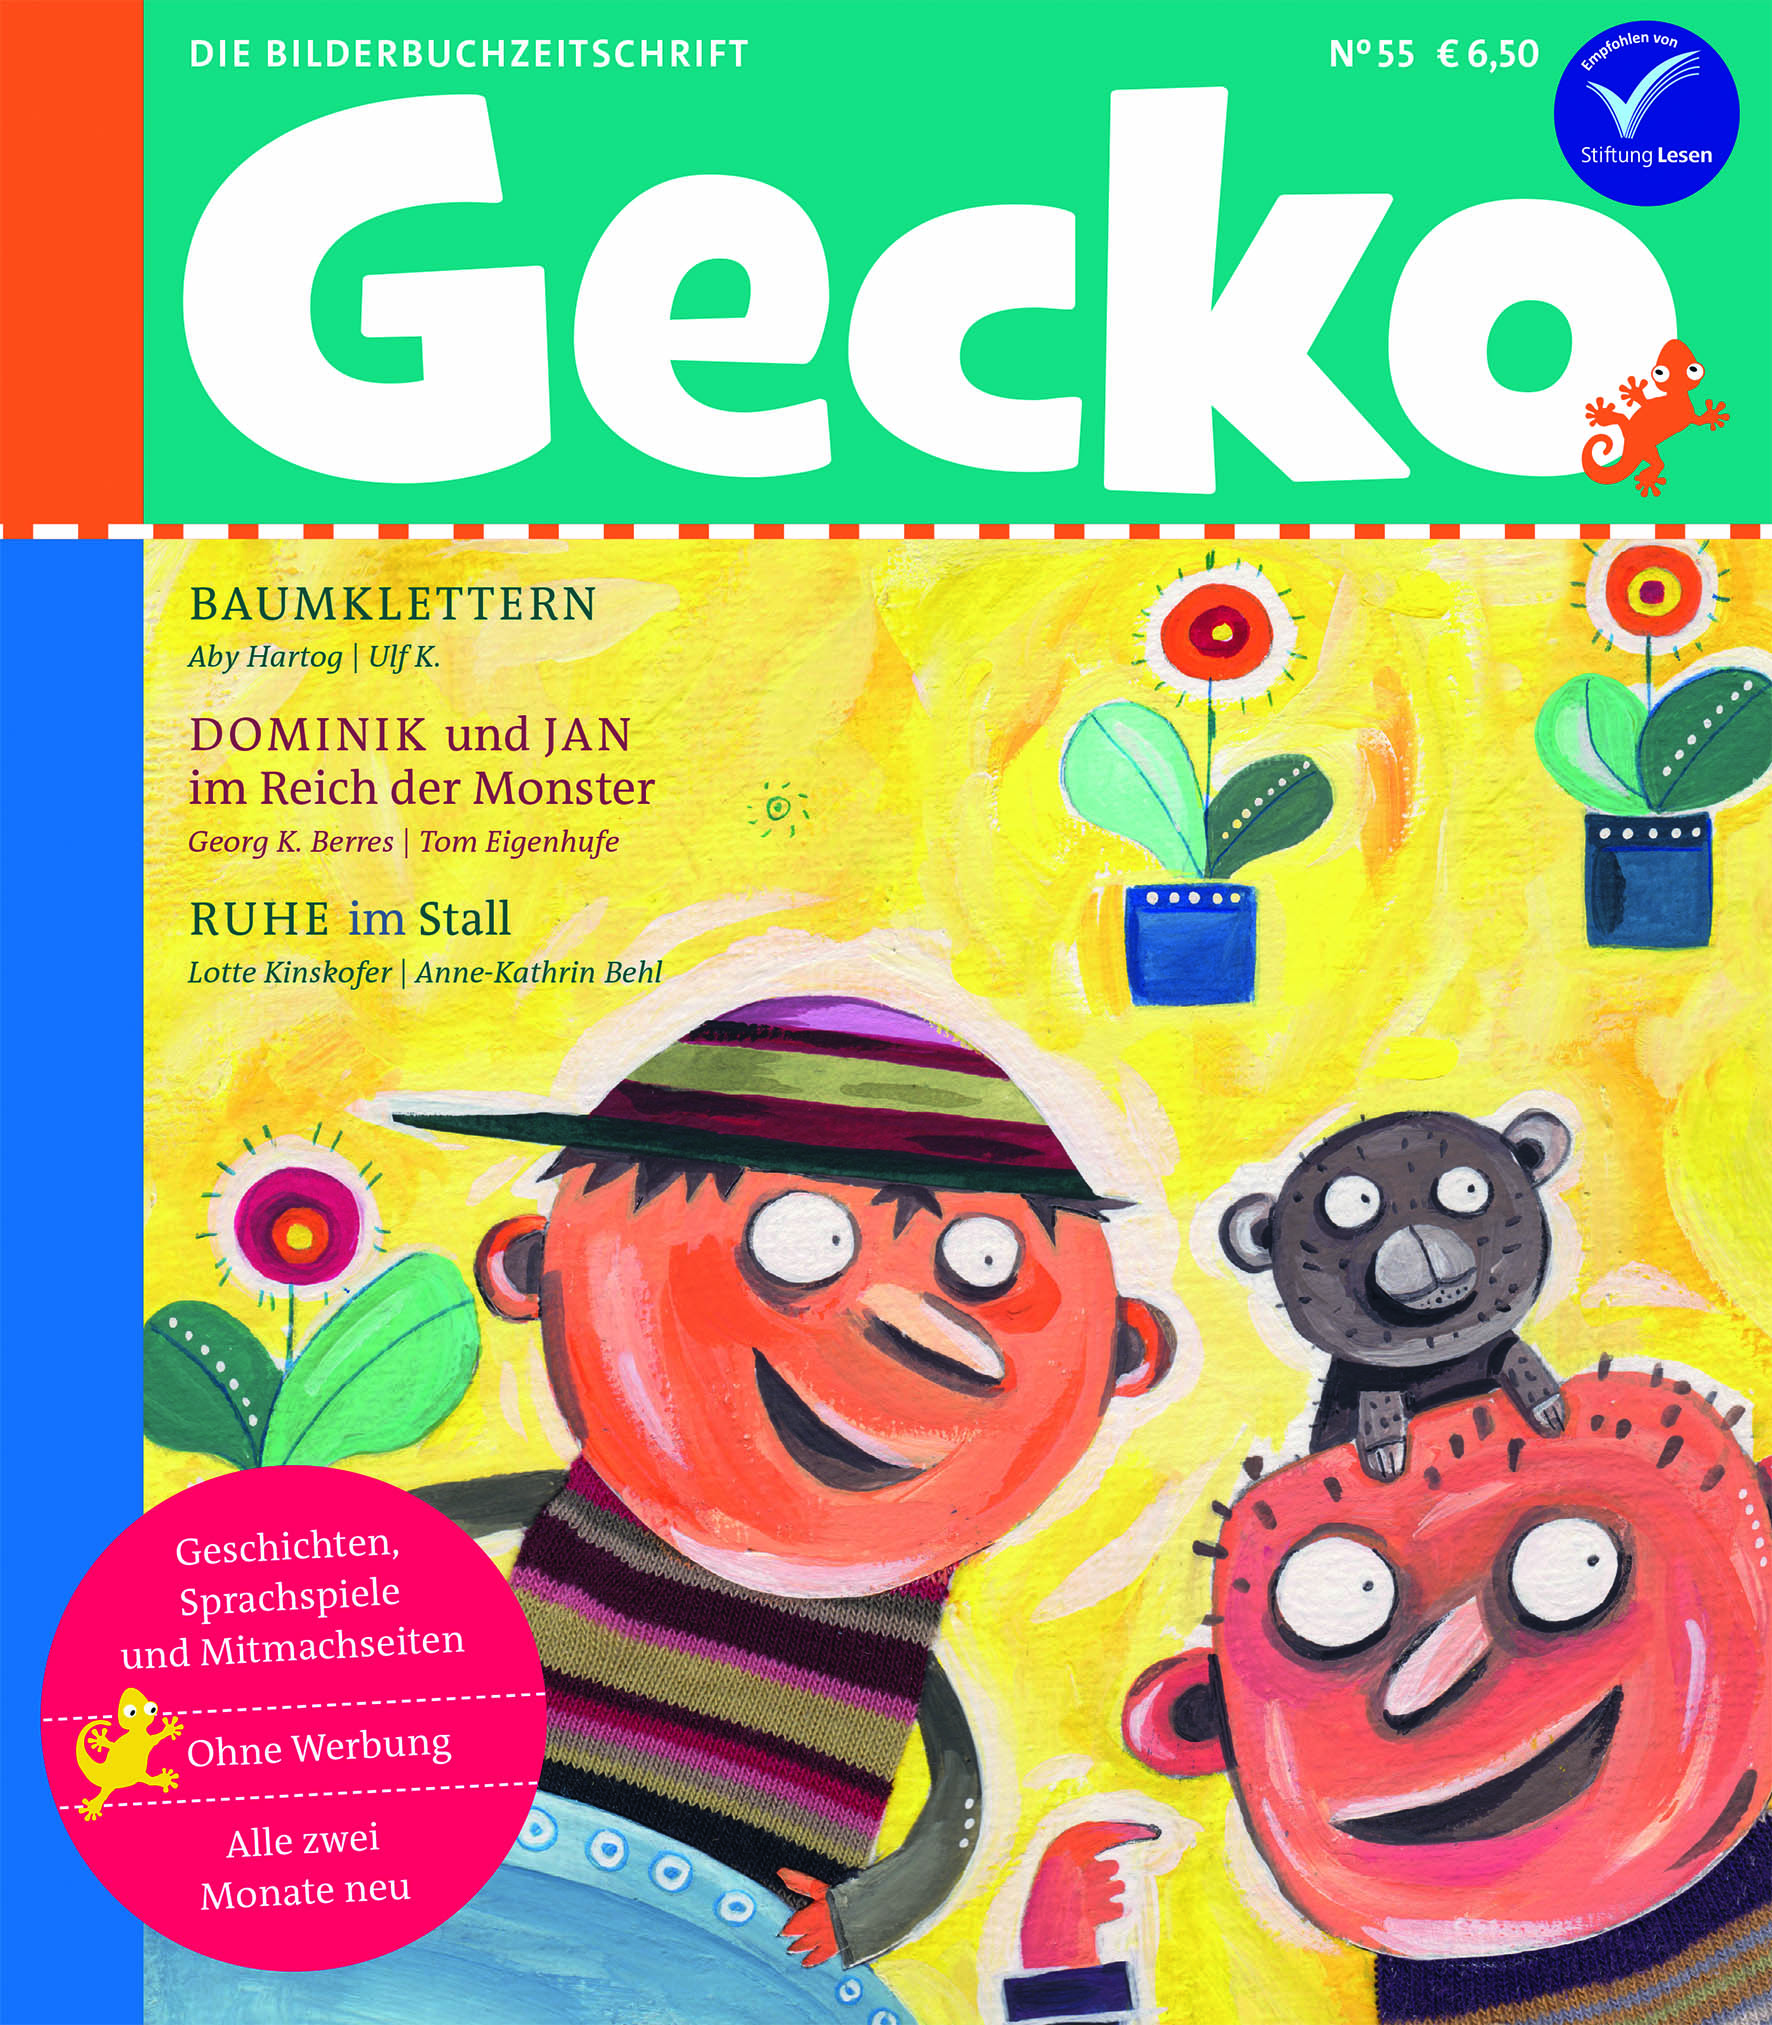 Gecko_55 Cover Druck (4 MB)